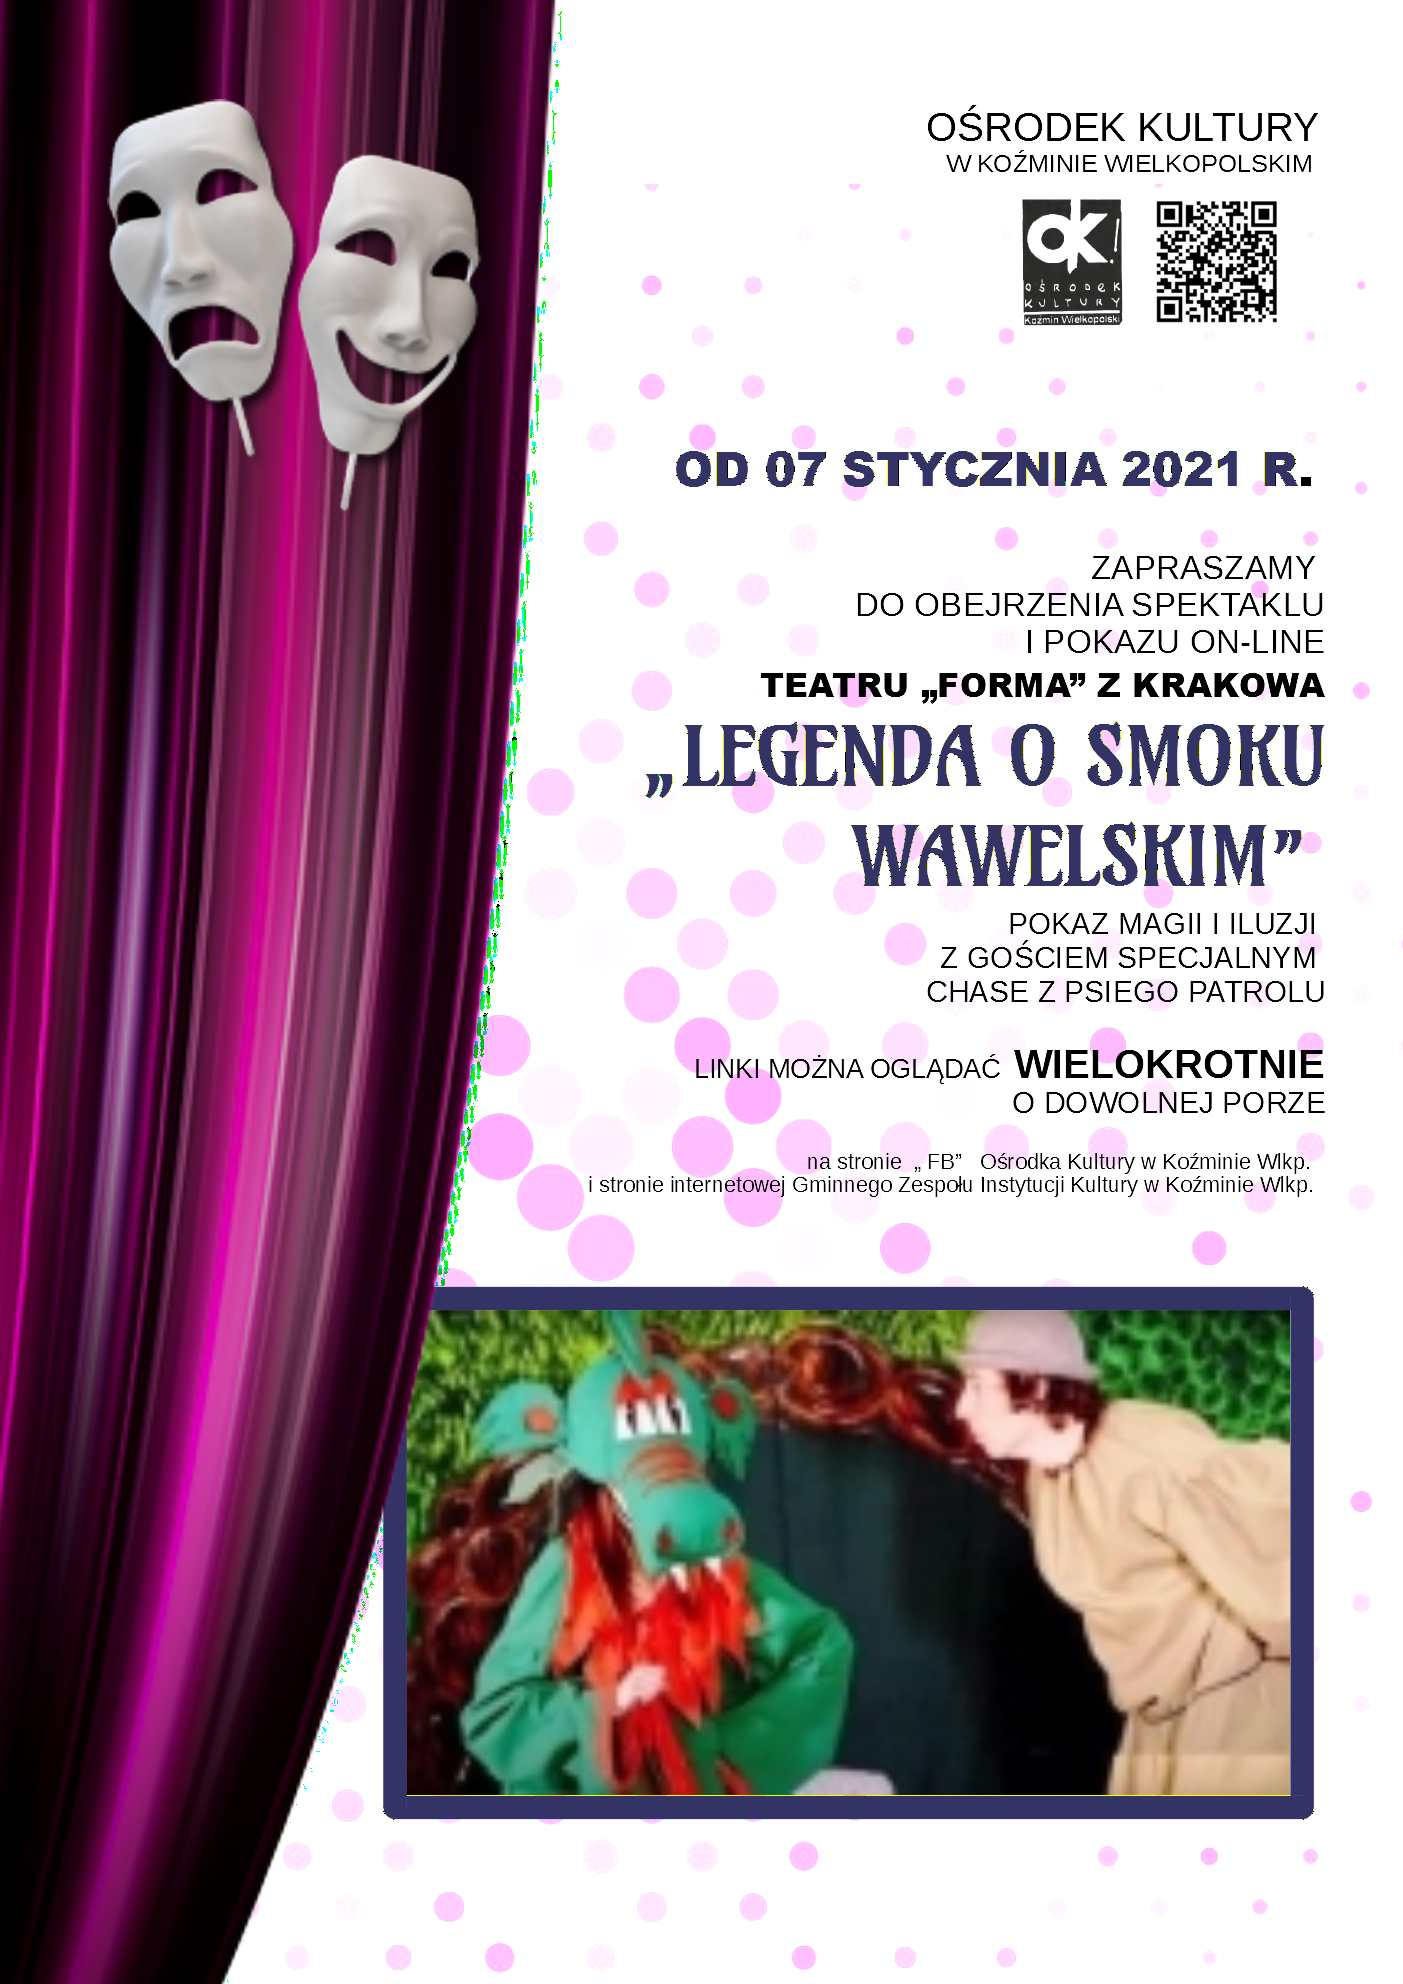 LEGENDA O SMOKU WAWELSKIM spektakl on-line